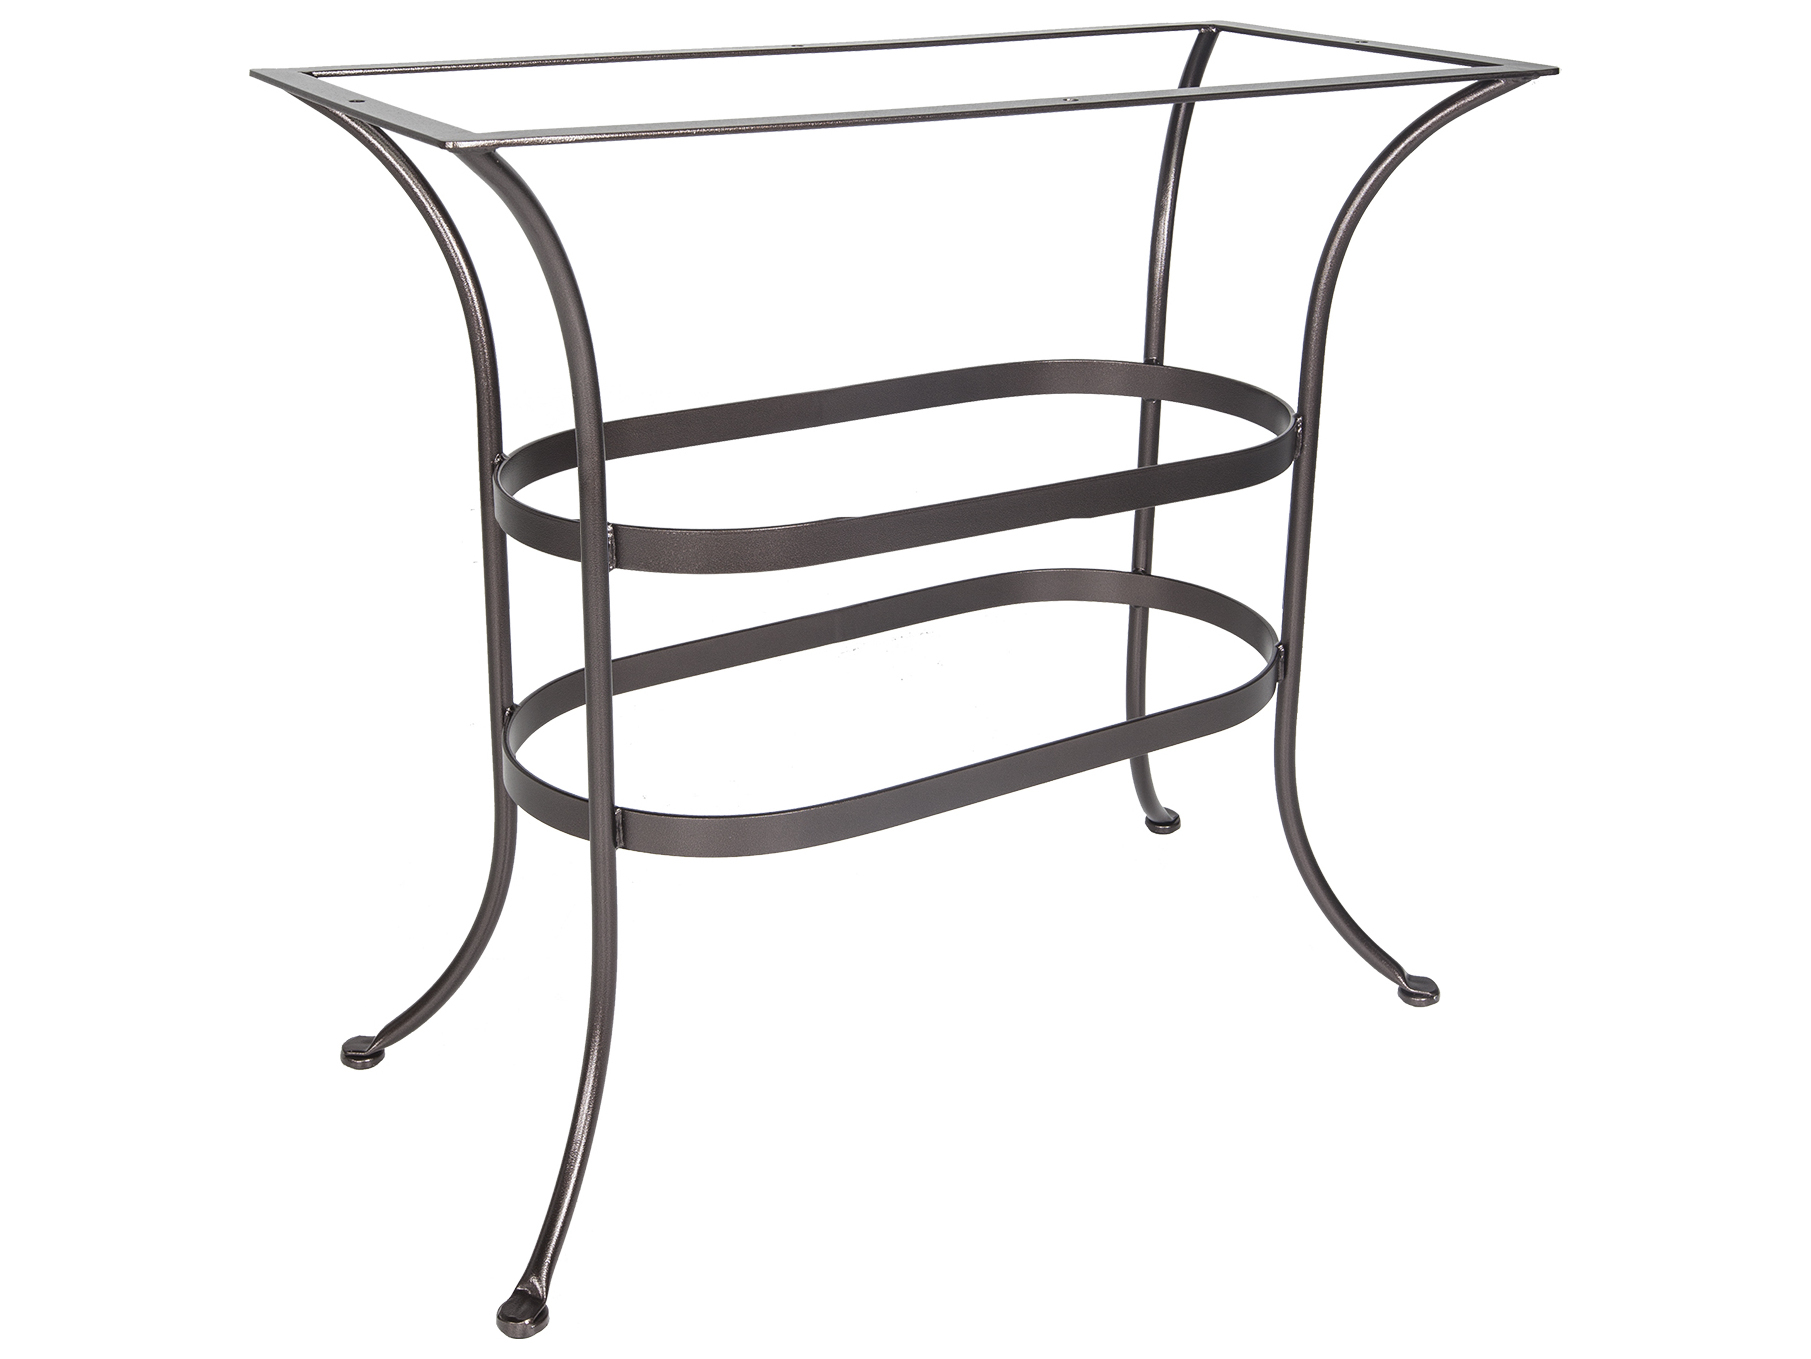 Ow lee wrought iron counter table base ct05 base for Outdoor table bases wrought iron